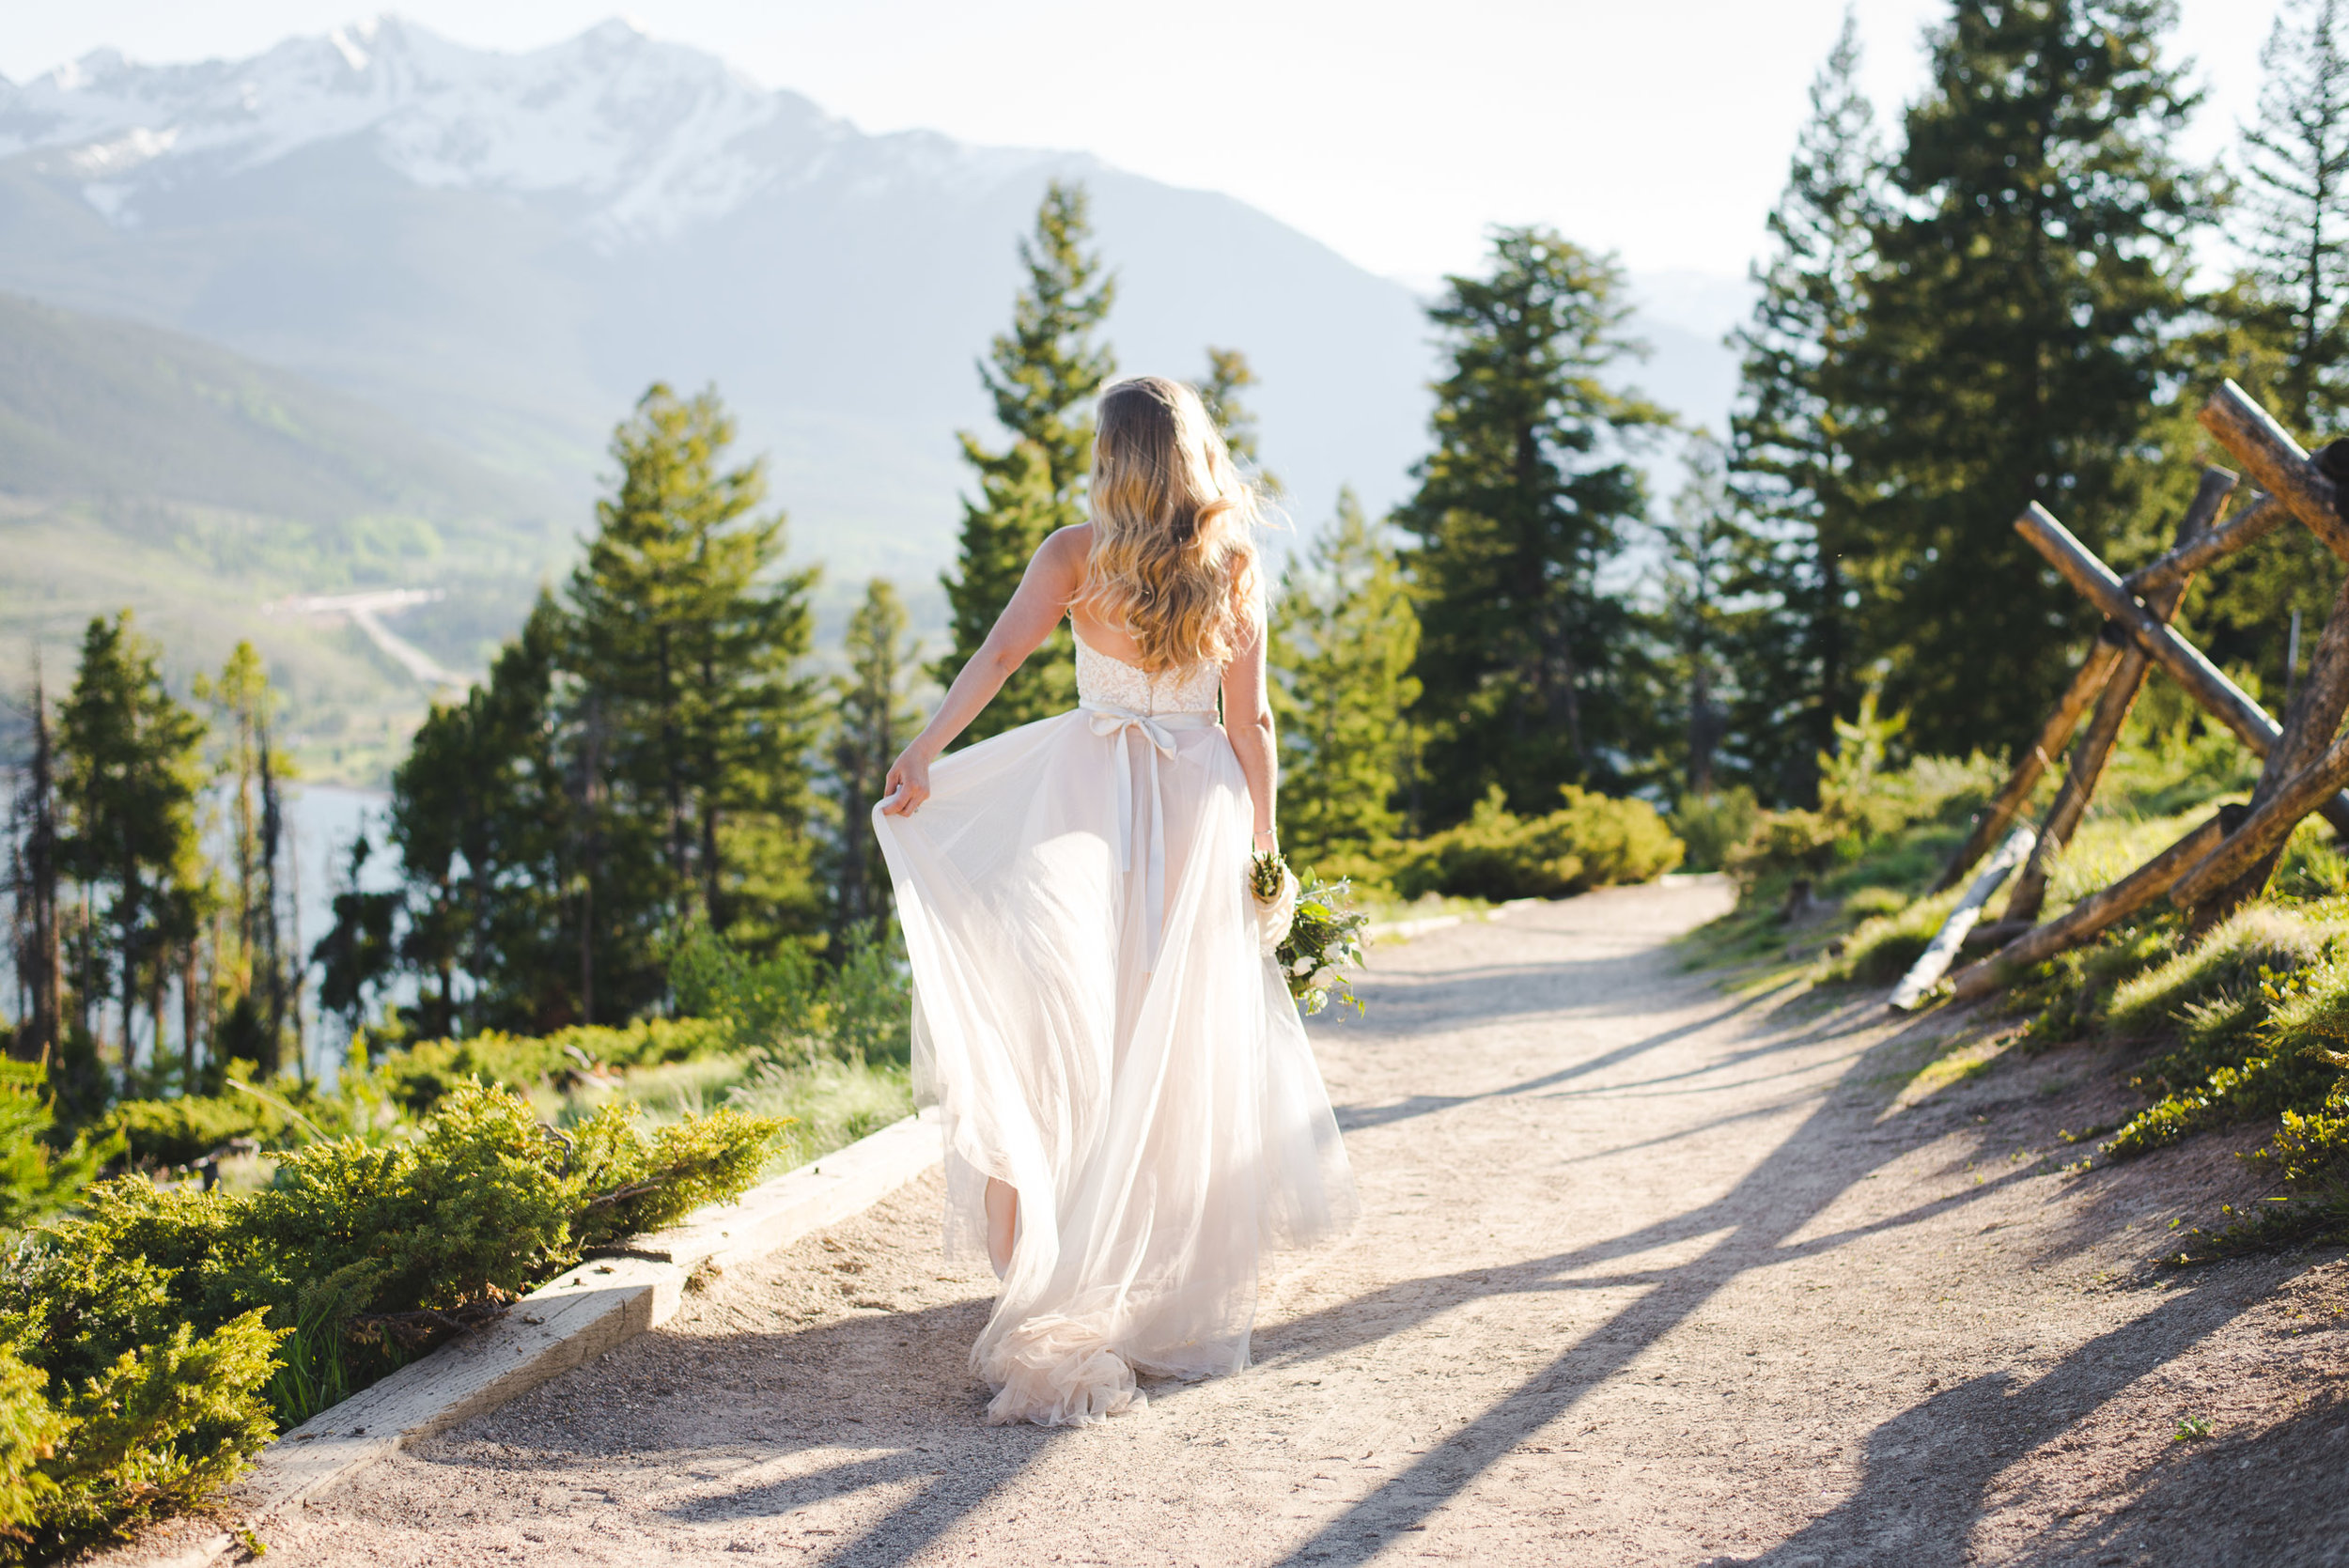 Summer Colorado Mountain wedding near Breckenridge | Summit Mountain Weddings | images by Keeping Composure Photography